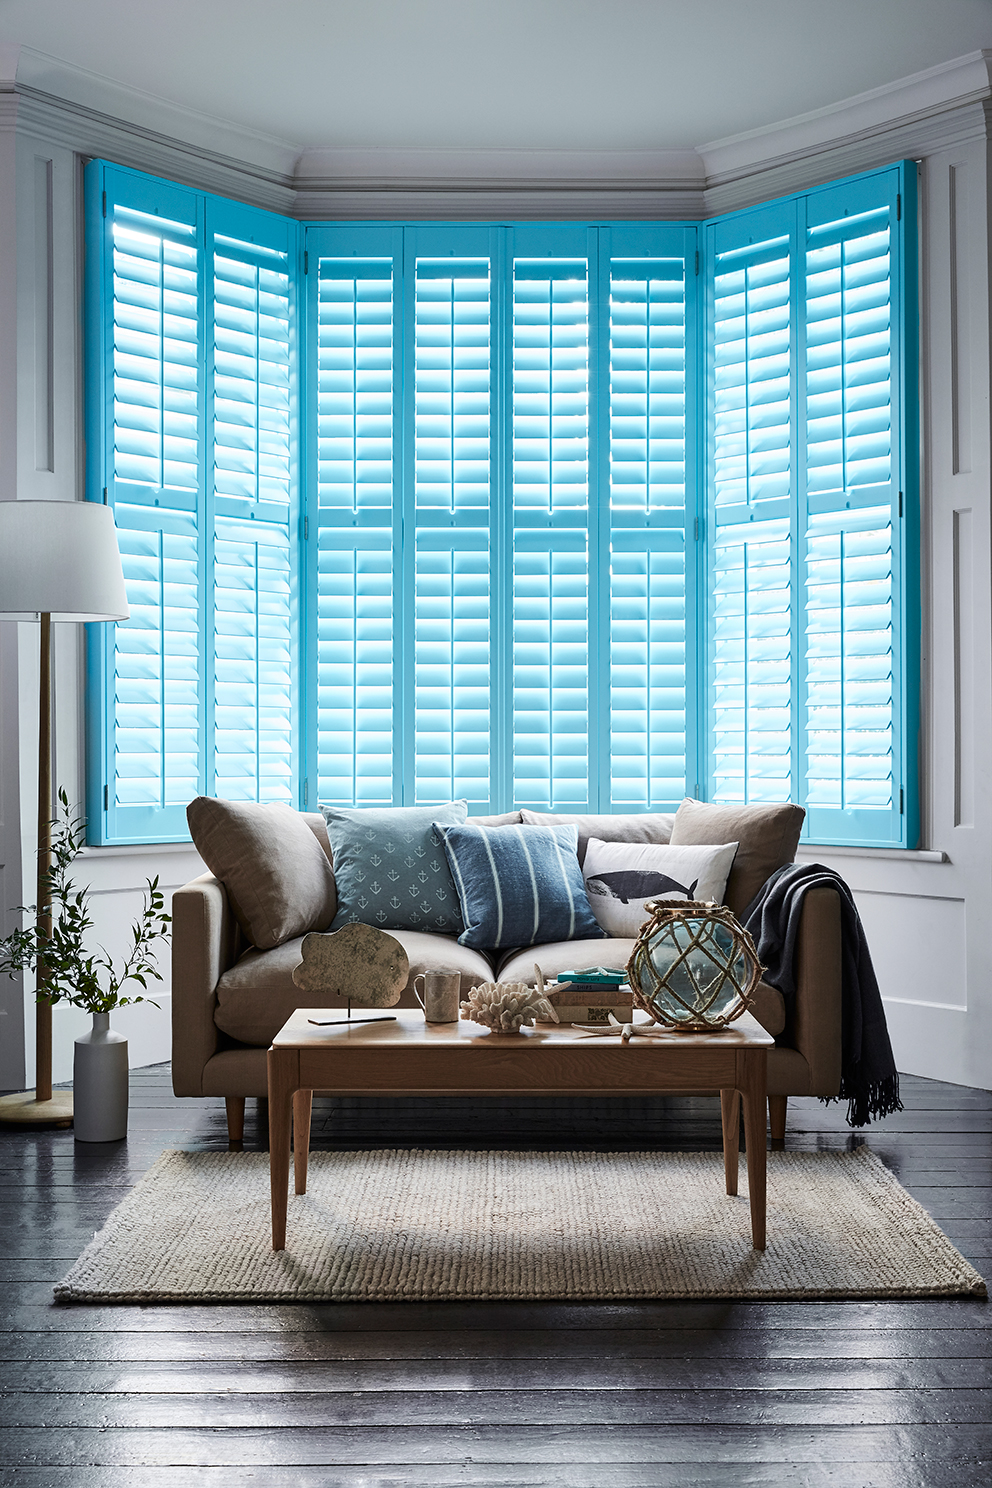 Shutterly Fabulous - French For Pineapple Blog - Full lenghth blue plantation shutters in bay window